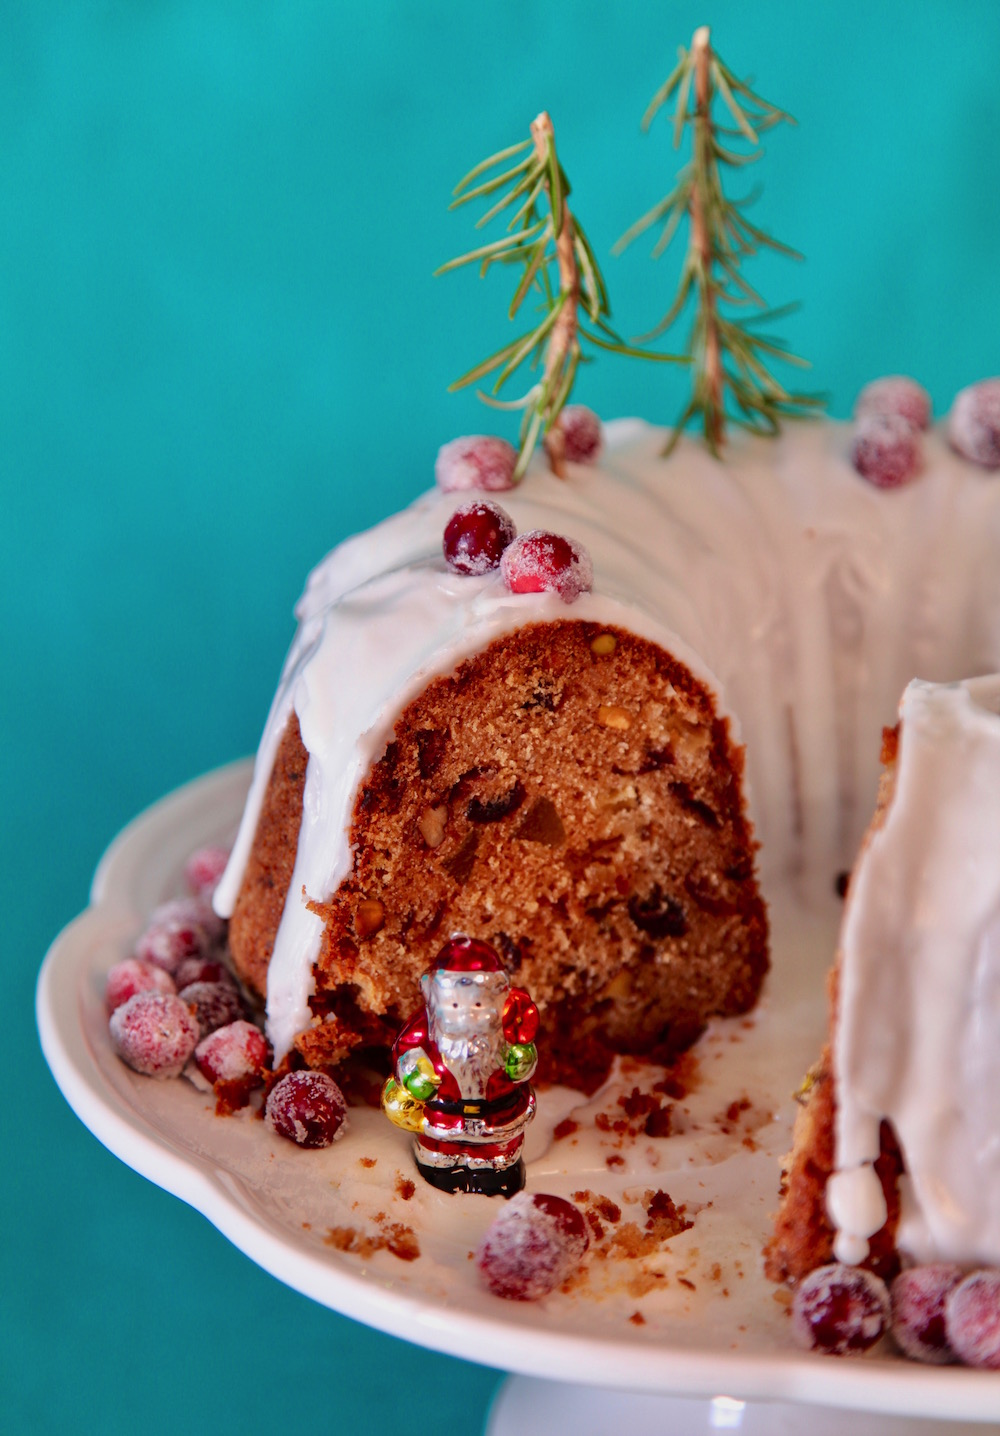 This delicious fruitcake recipe is everything